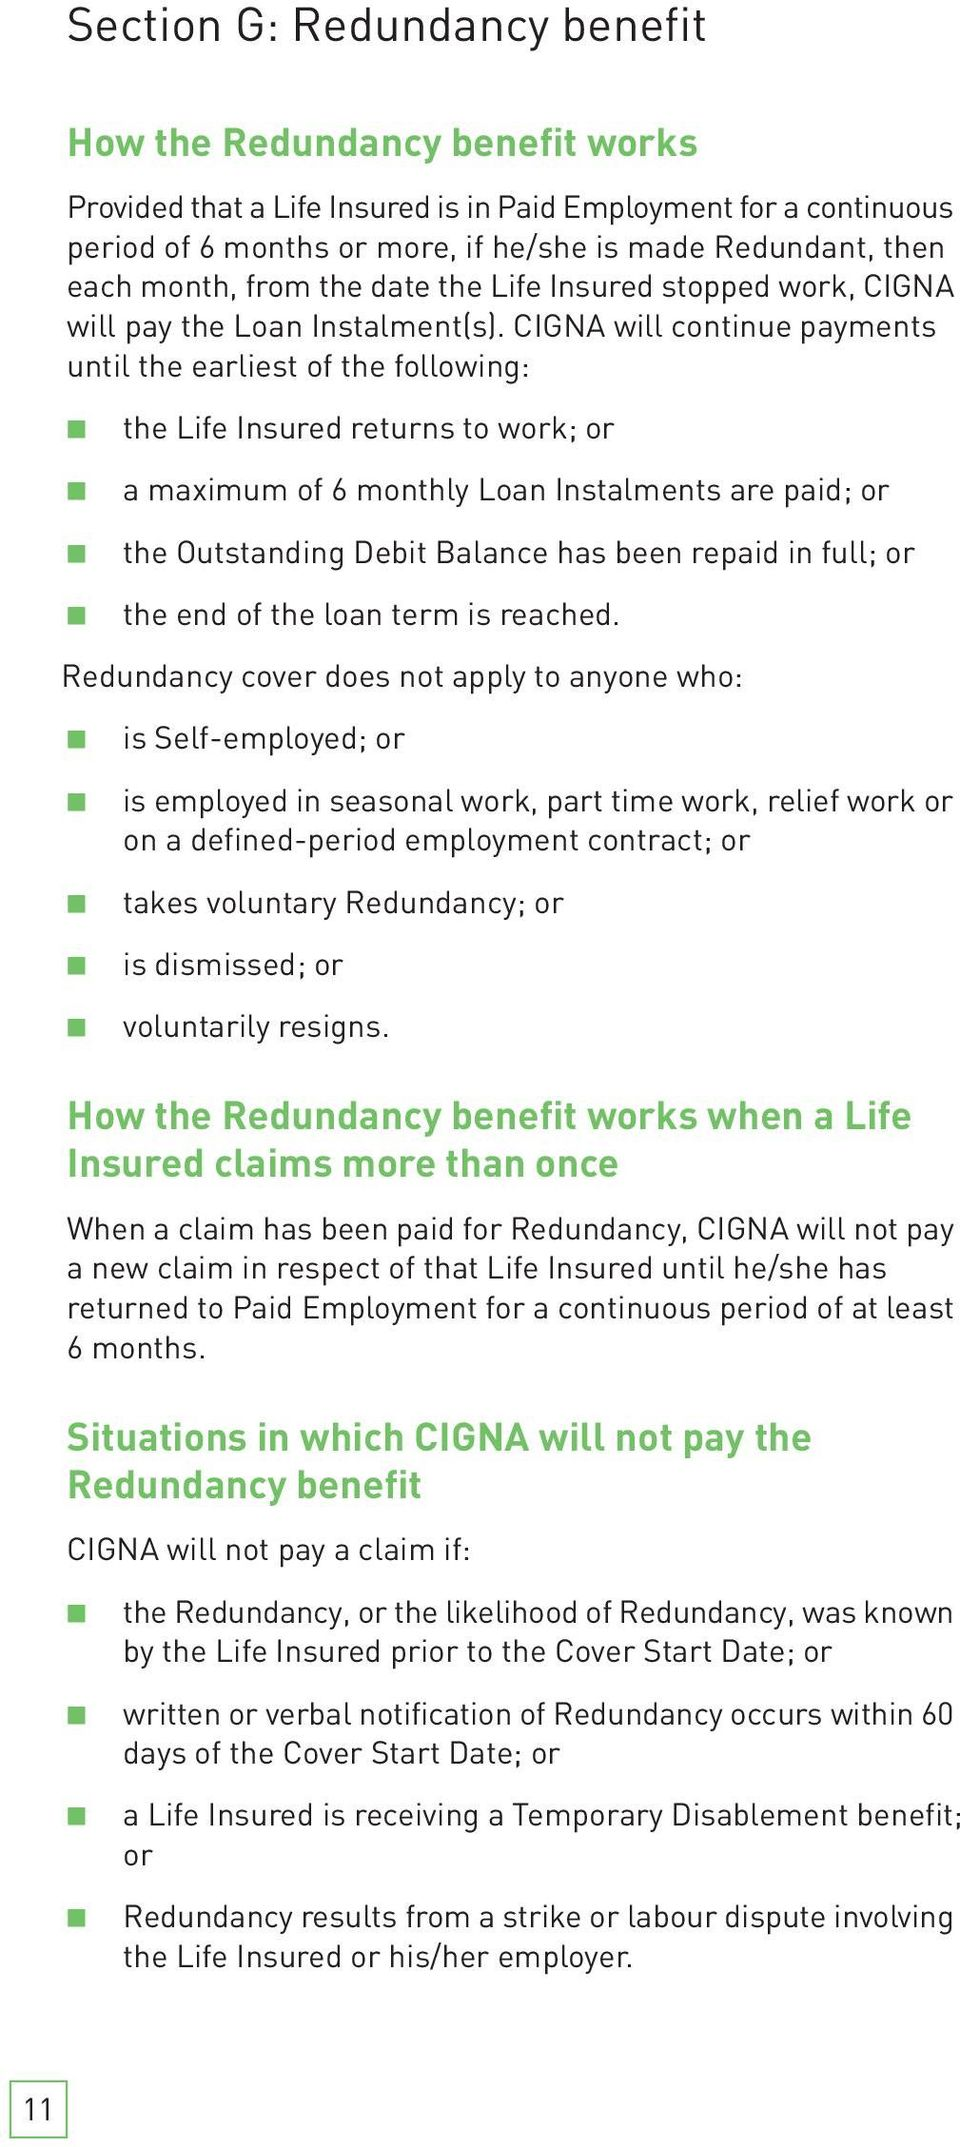 CIGNA will continue payments until the earliest of the following: the Life Insured returns to work; or a maximum of 6 monthly Loan Instalments are paid; or the Outstanding Debit Balance has been